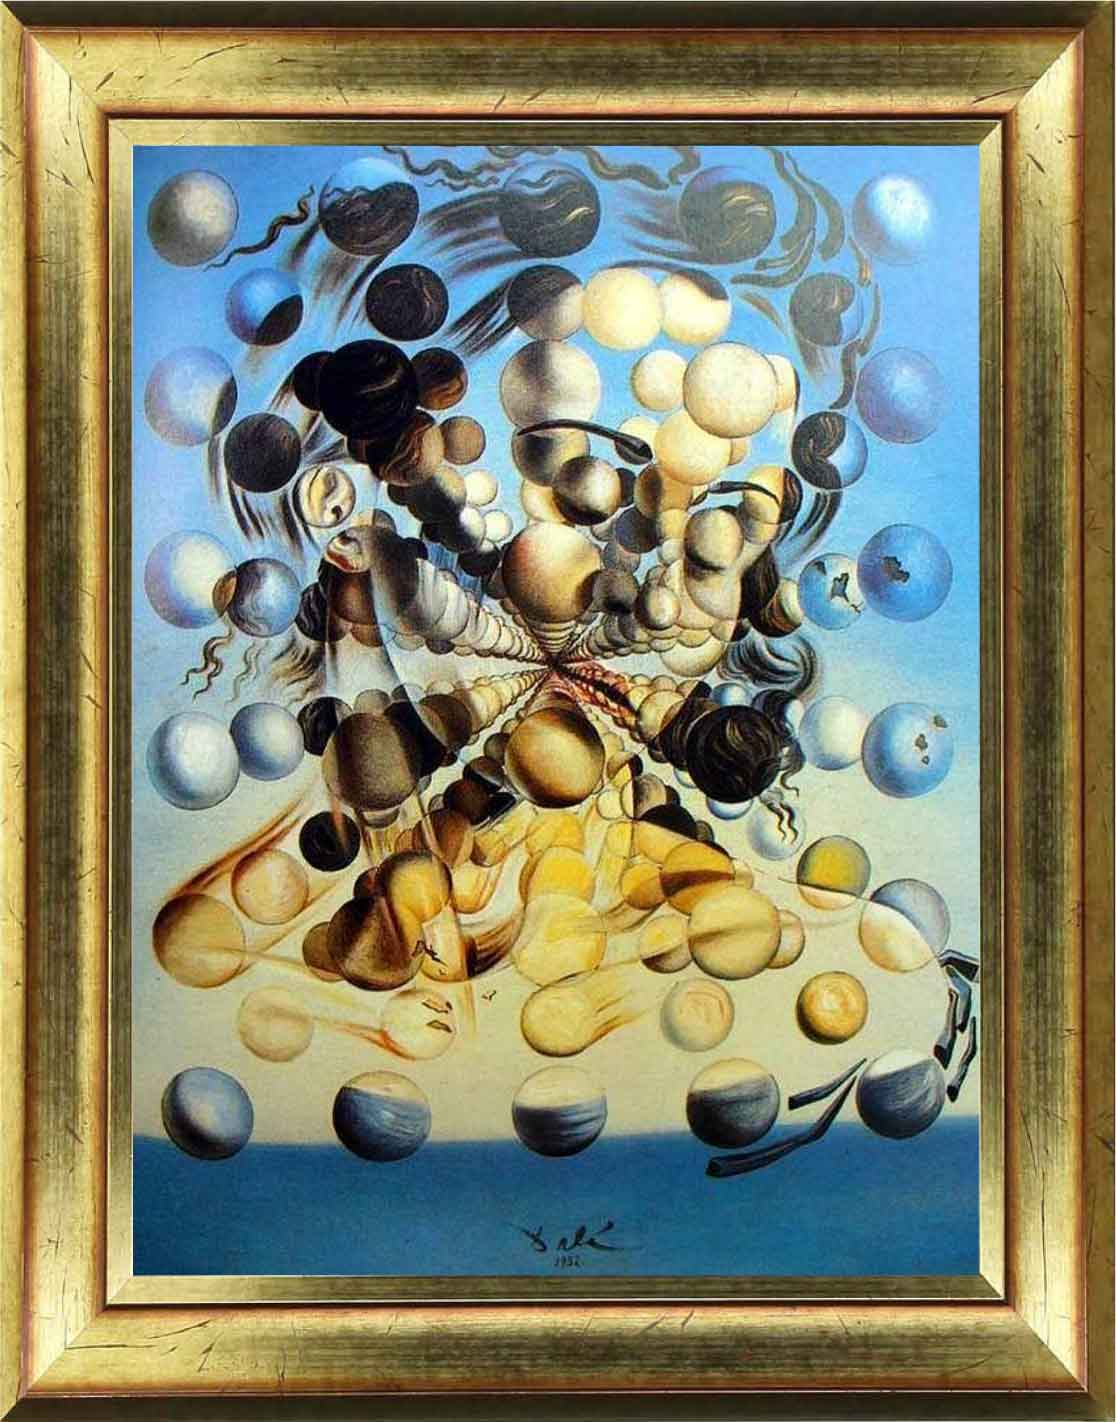 Wall Decal Painting Dali Gala Of Spheres Wall Decal Wall Decal Art And Design Abstract Ambiance Sticker